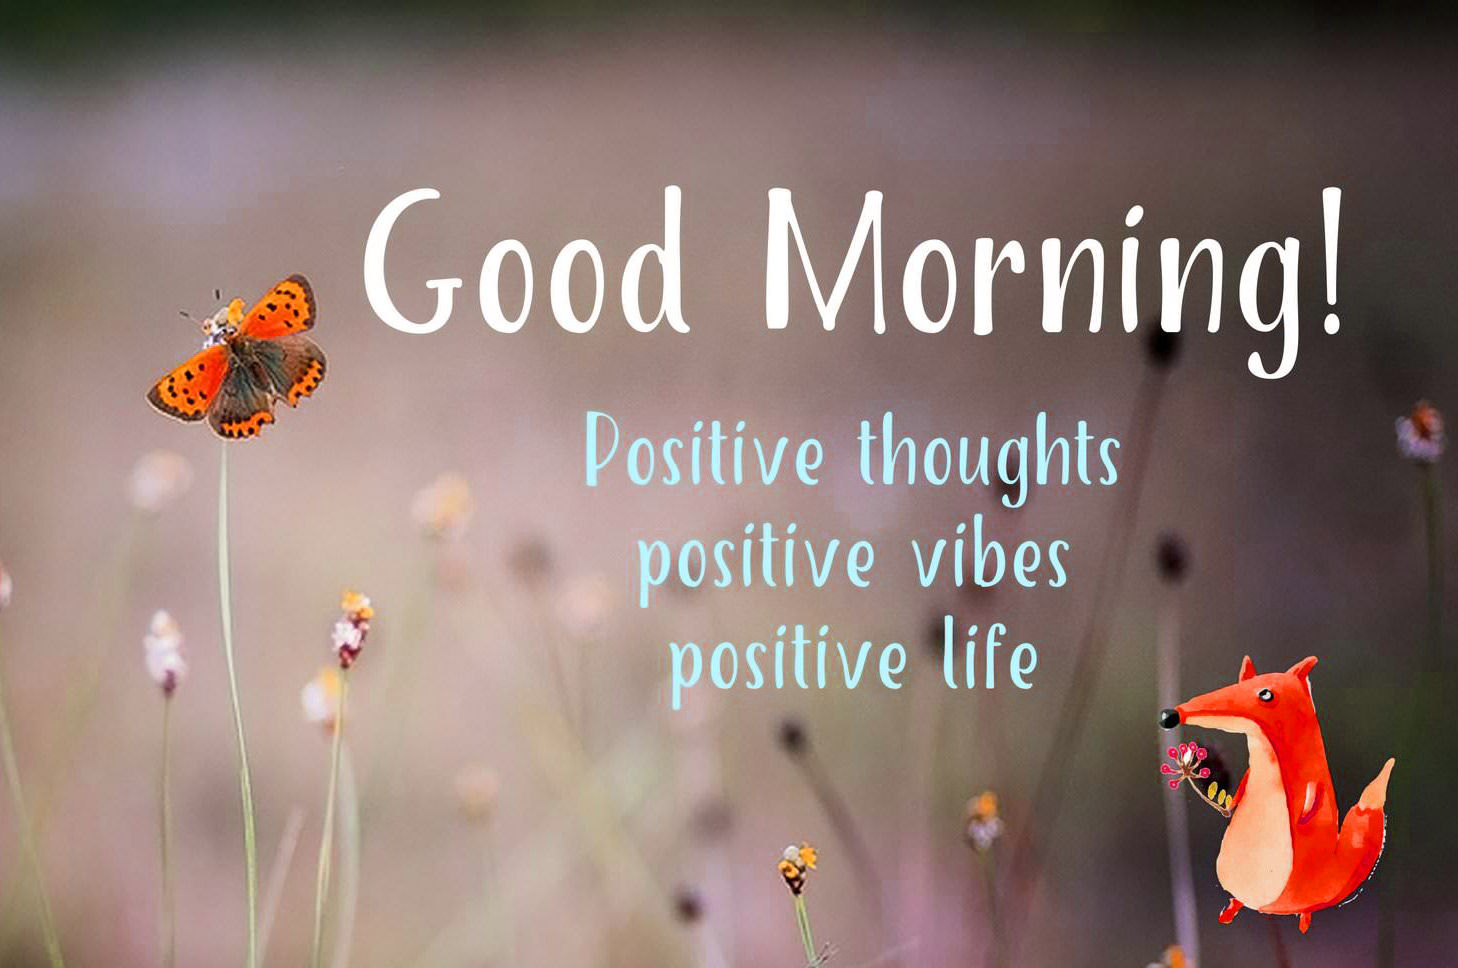 Good morning thought Wallpaper Free Download